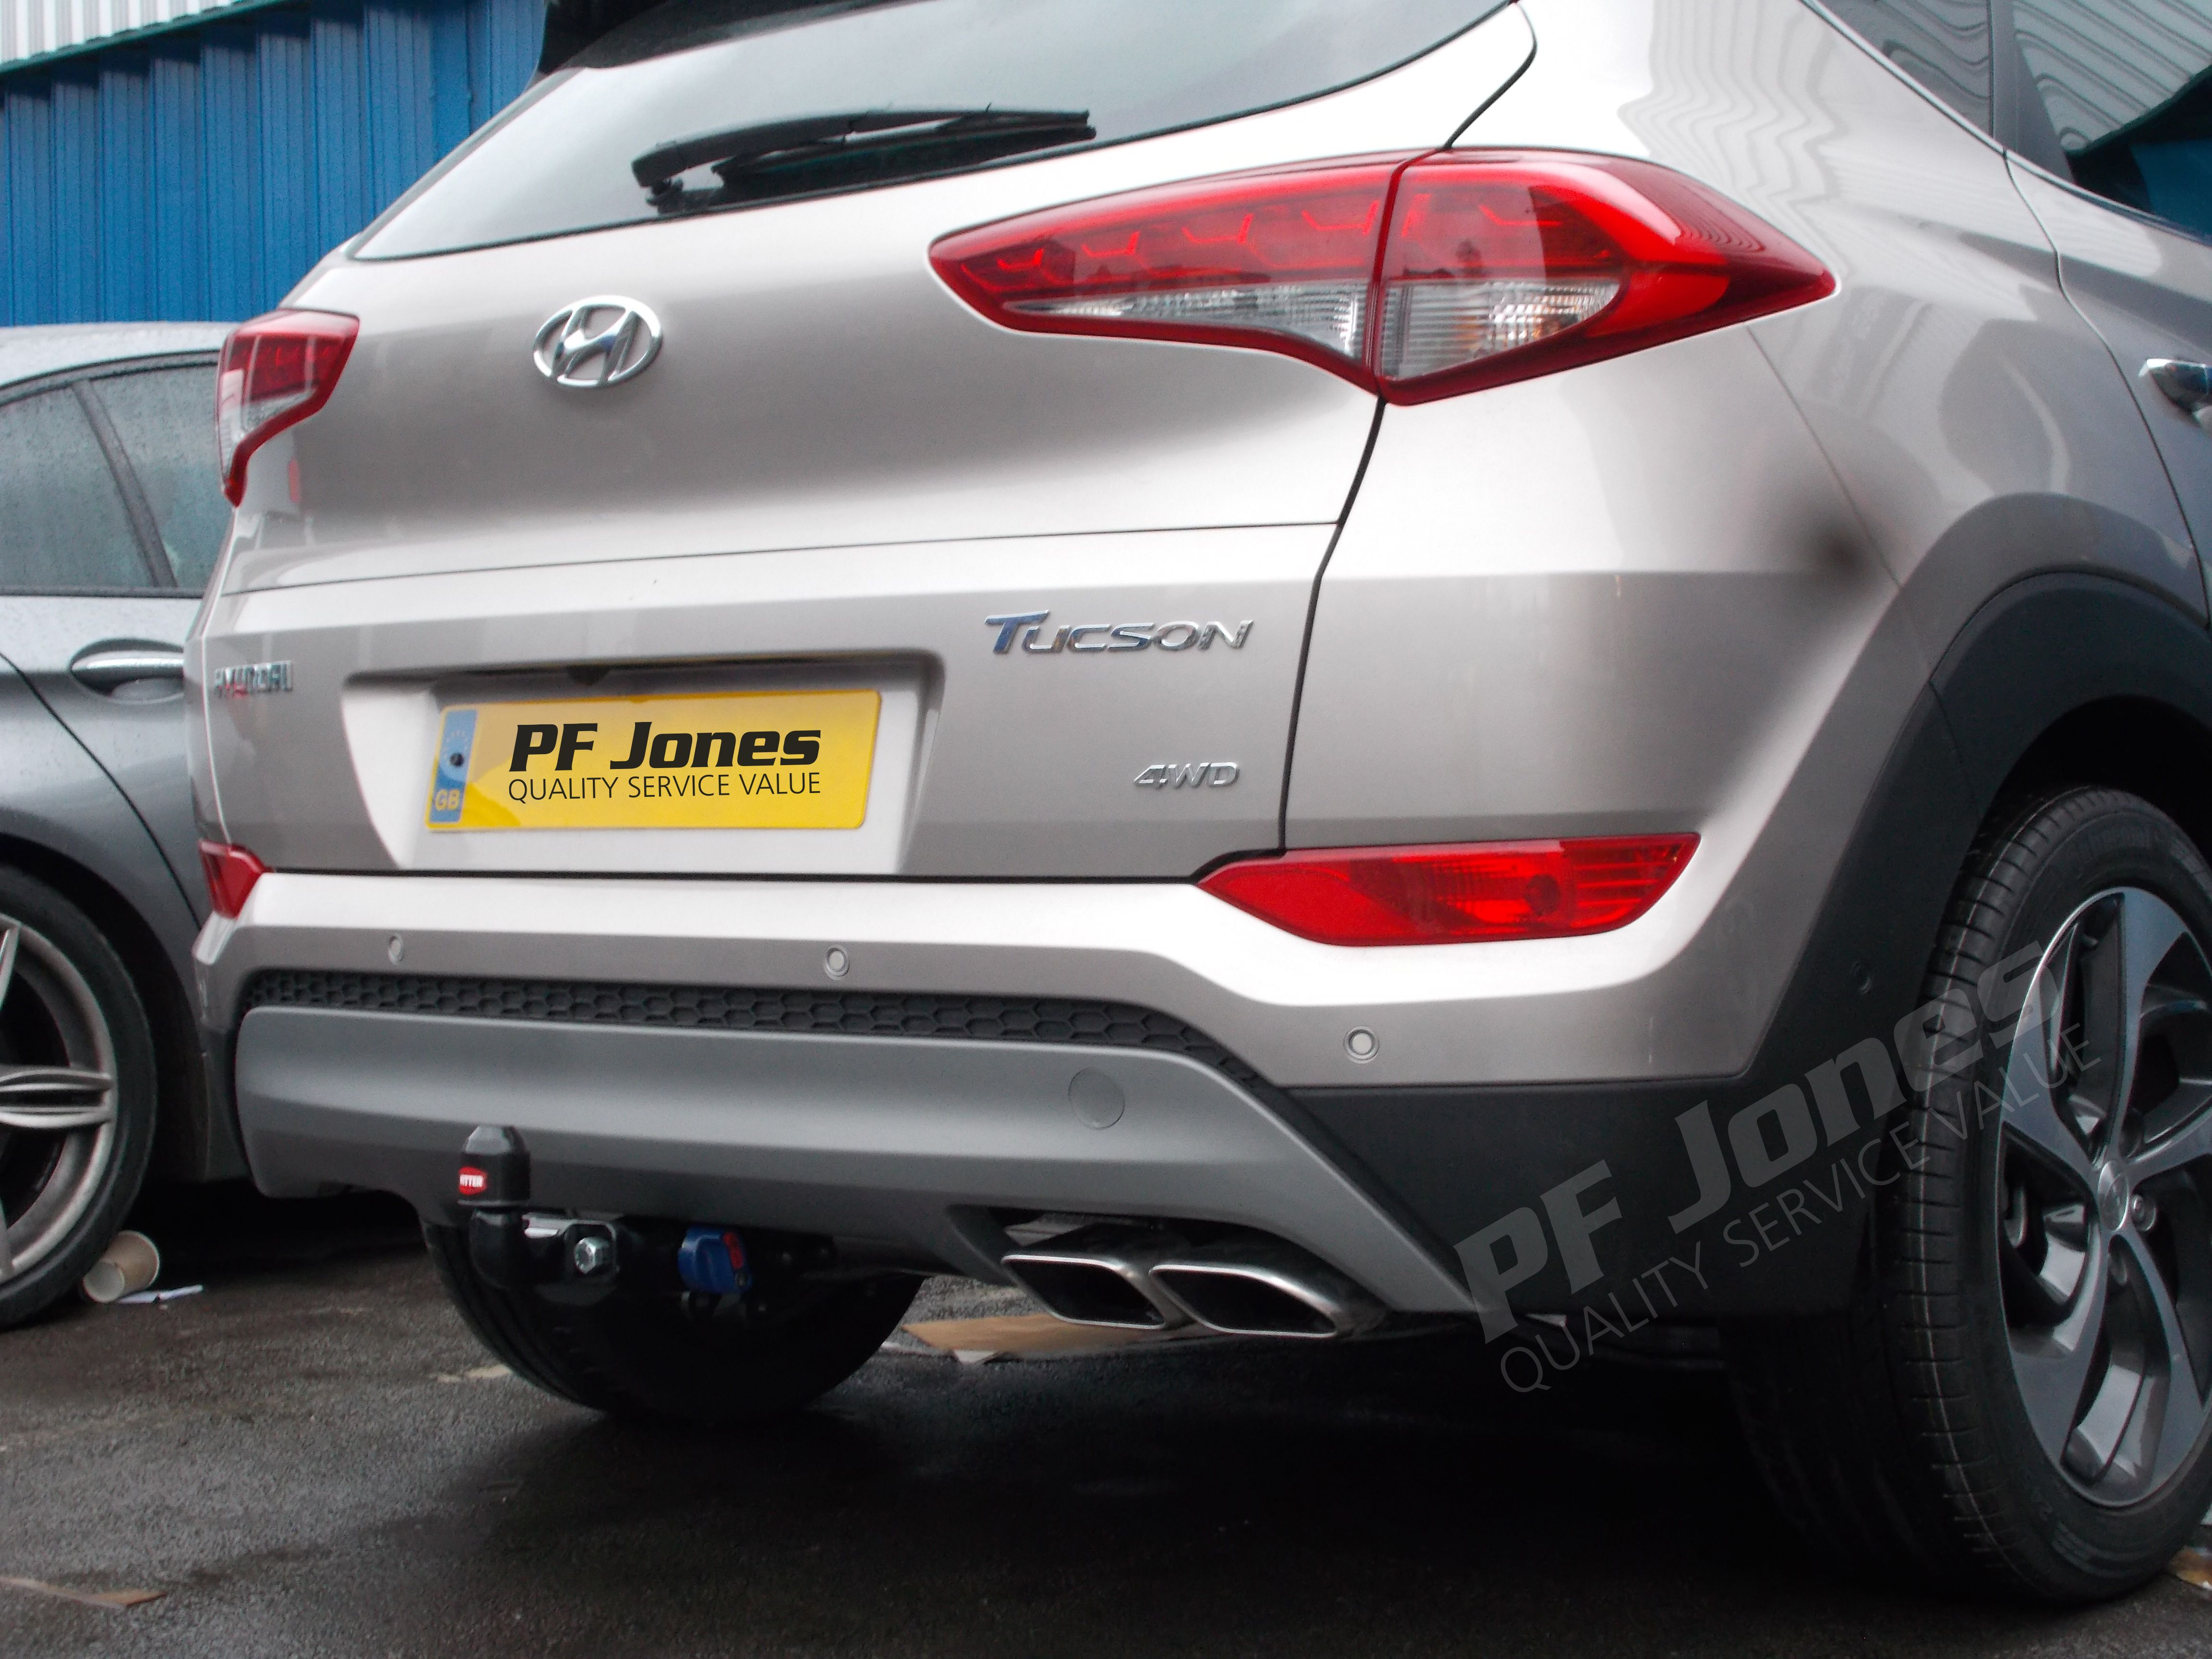 Witter Zx210 Fitted in Bognor to Ford Fiesta Towbars Pinterest